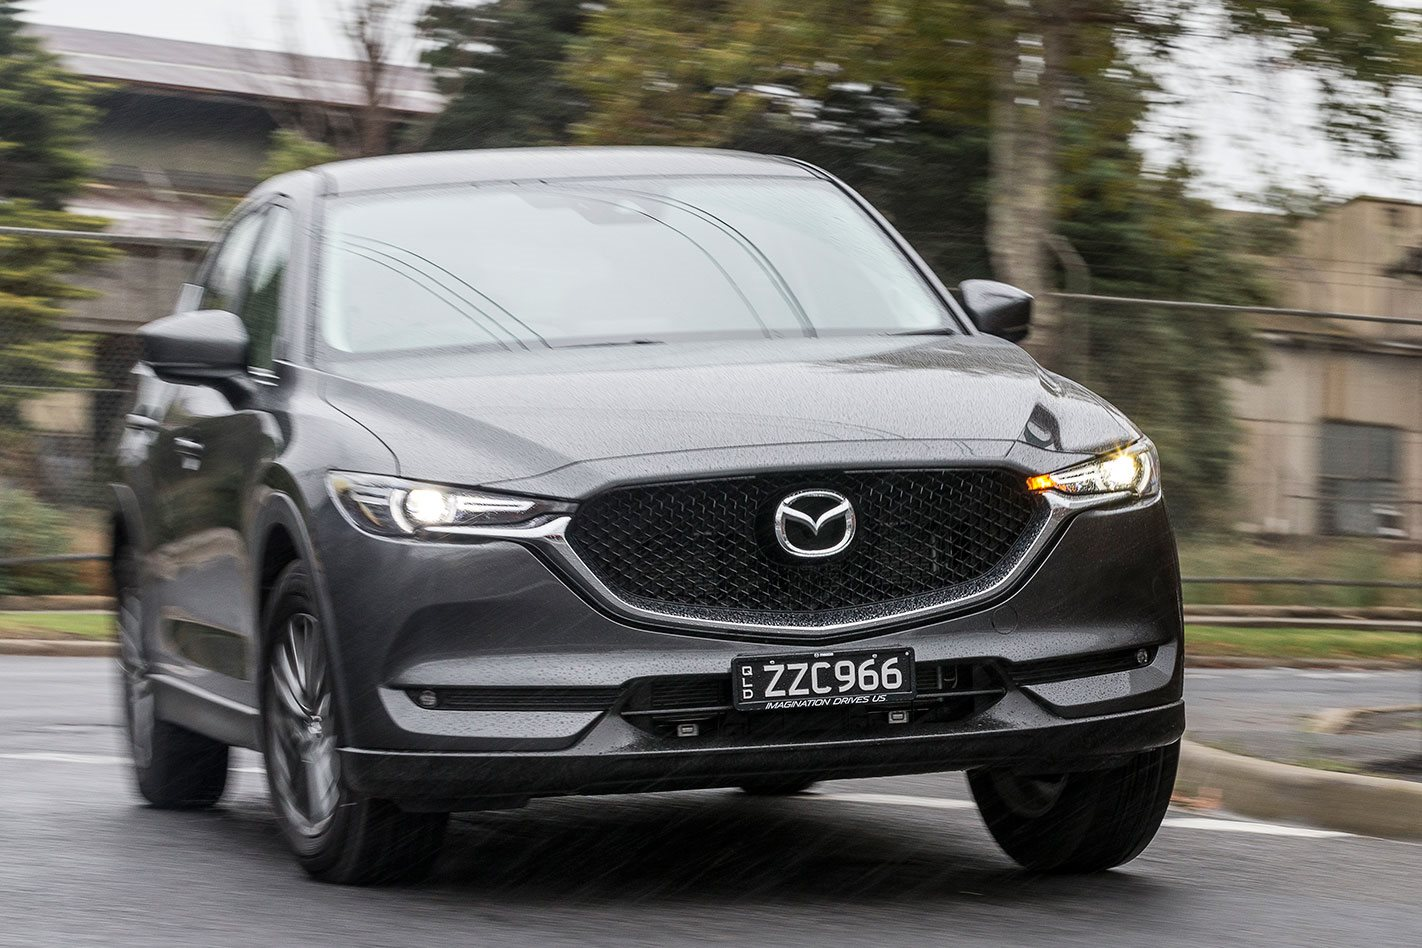 mazda cx 5 2019 range review price features specs. Black Bedroom Furniture Sets. Home Design Ideas